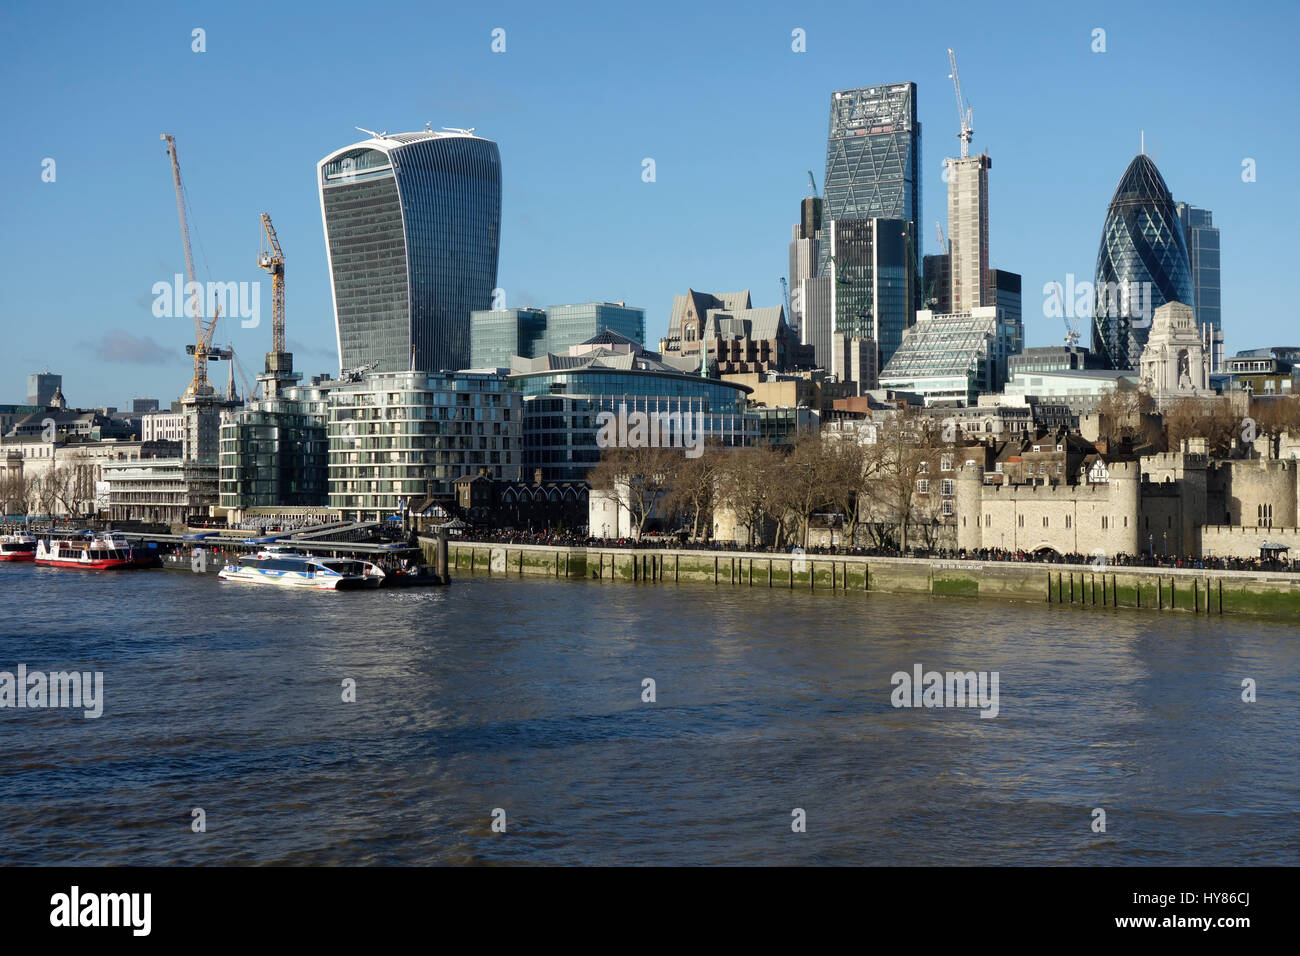 City of London Skyline, UK. - Stock Image